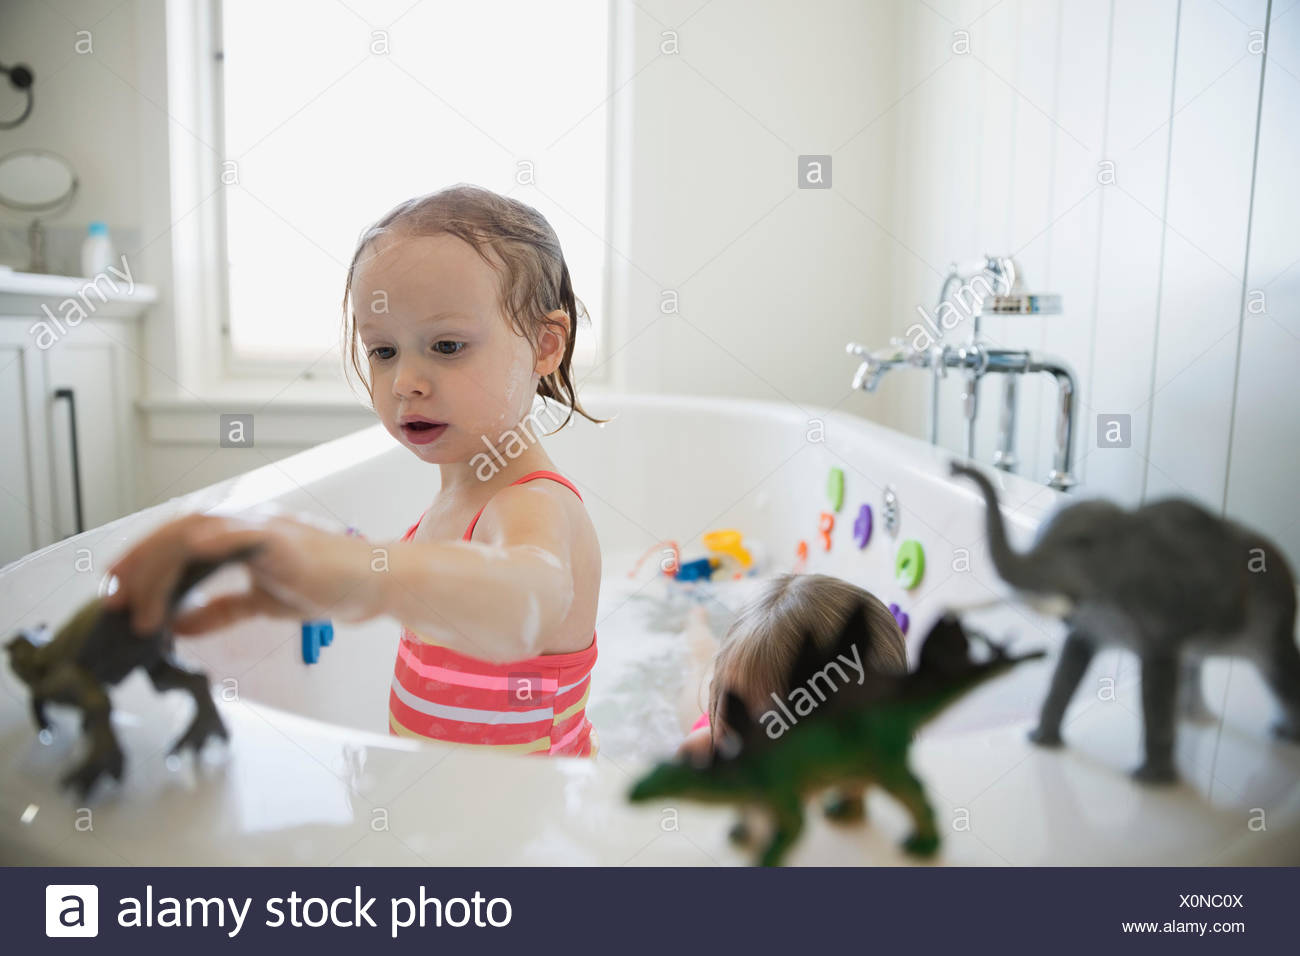 Girl playing with toy dinosaurs in bath - Stock Image